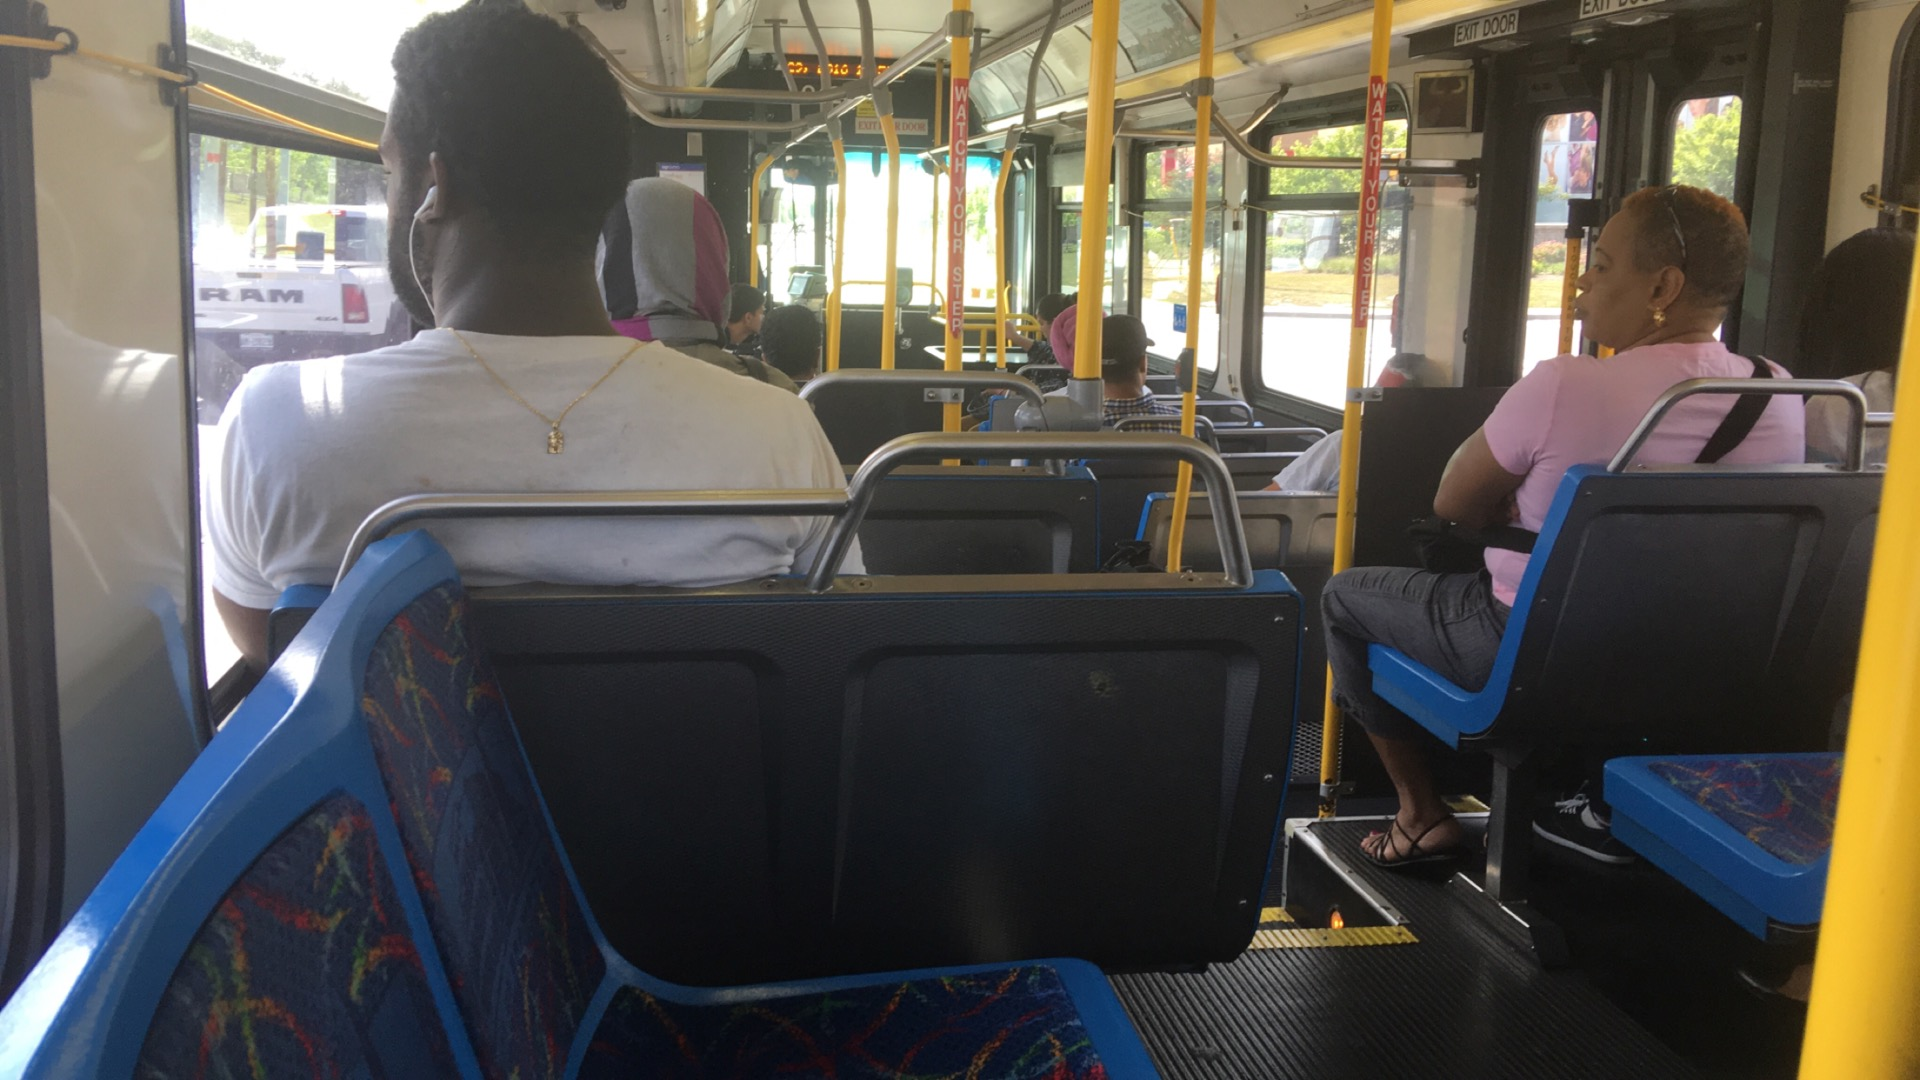 Picture of the view from a public transportation bus